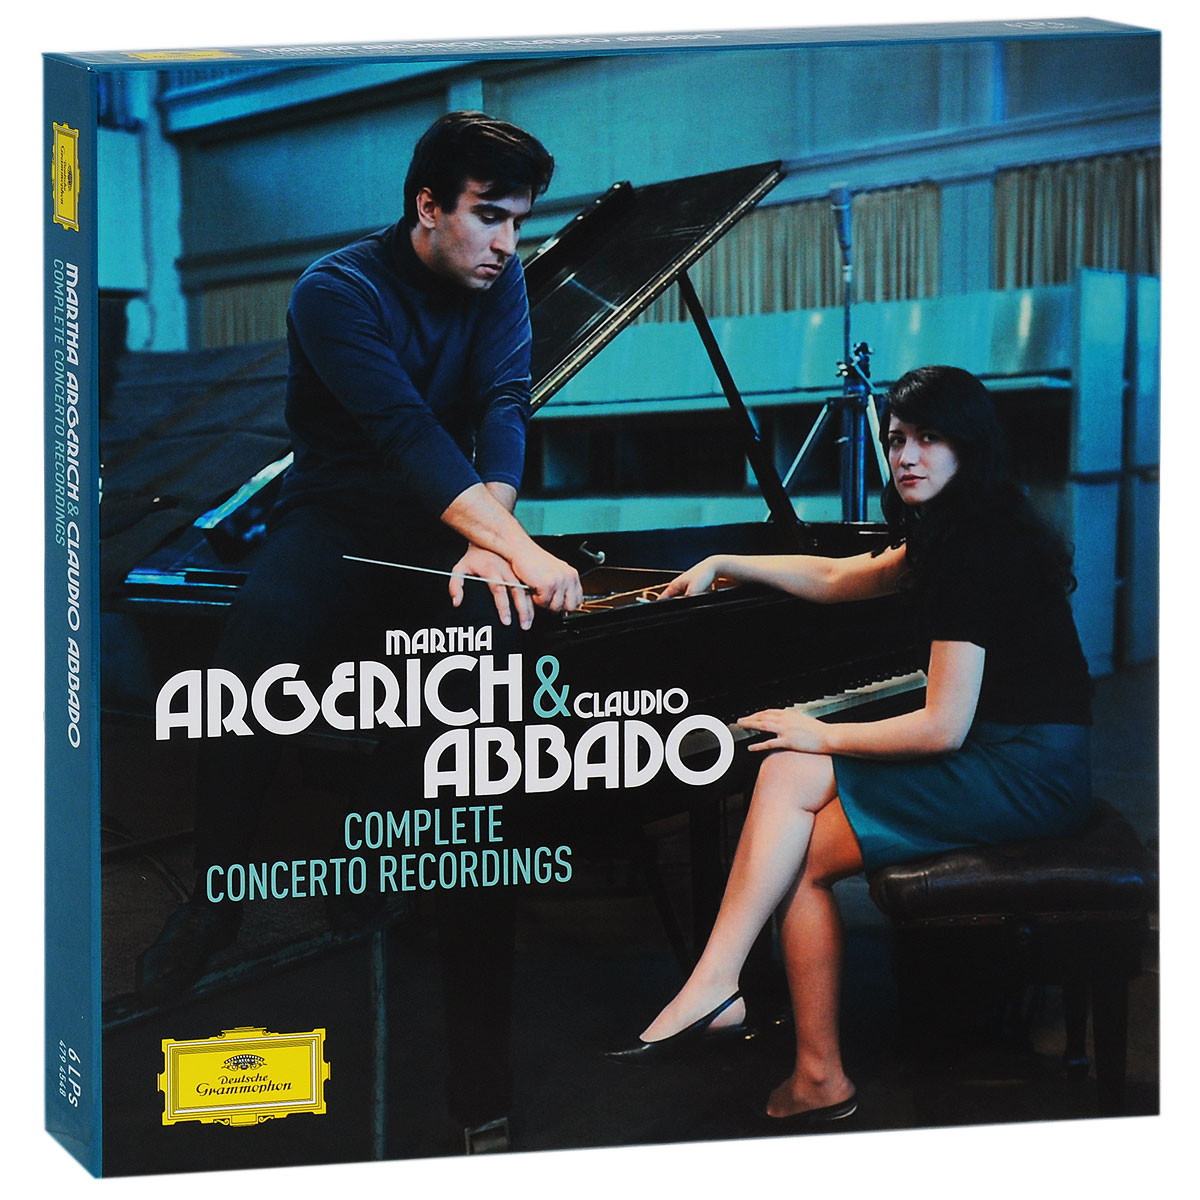 Марта Аргерих,Berliner Philharmoniker,Клаудио Аббадо,The London Symphony Orchestra,Mahler Chamber Orchestra,Orchestra Mozart Martha Argerich & Claudio Abbado. Complete Concerto Recordings. Limited Edition (6 LP) марта аргерих berliner philharmoniker клаудио аббадо the london symphony orchestra mahler chamber orchestra orchestra mozart martha argerich page 7 page 4 page 7